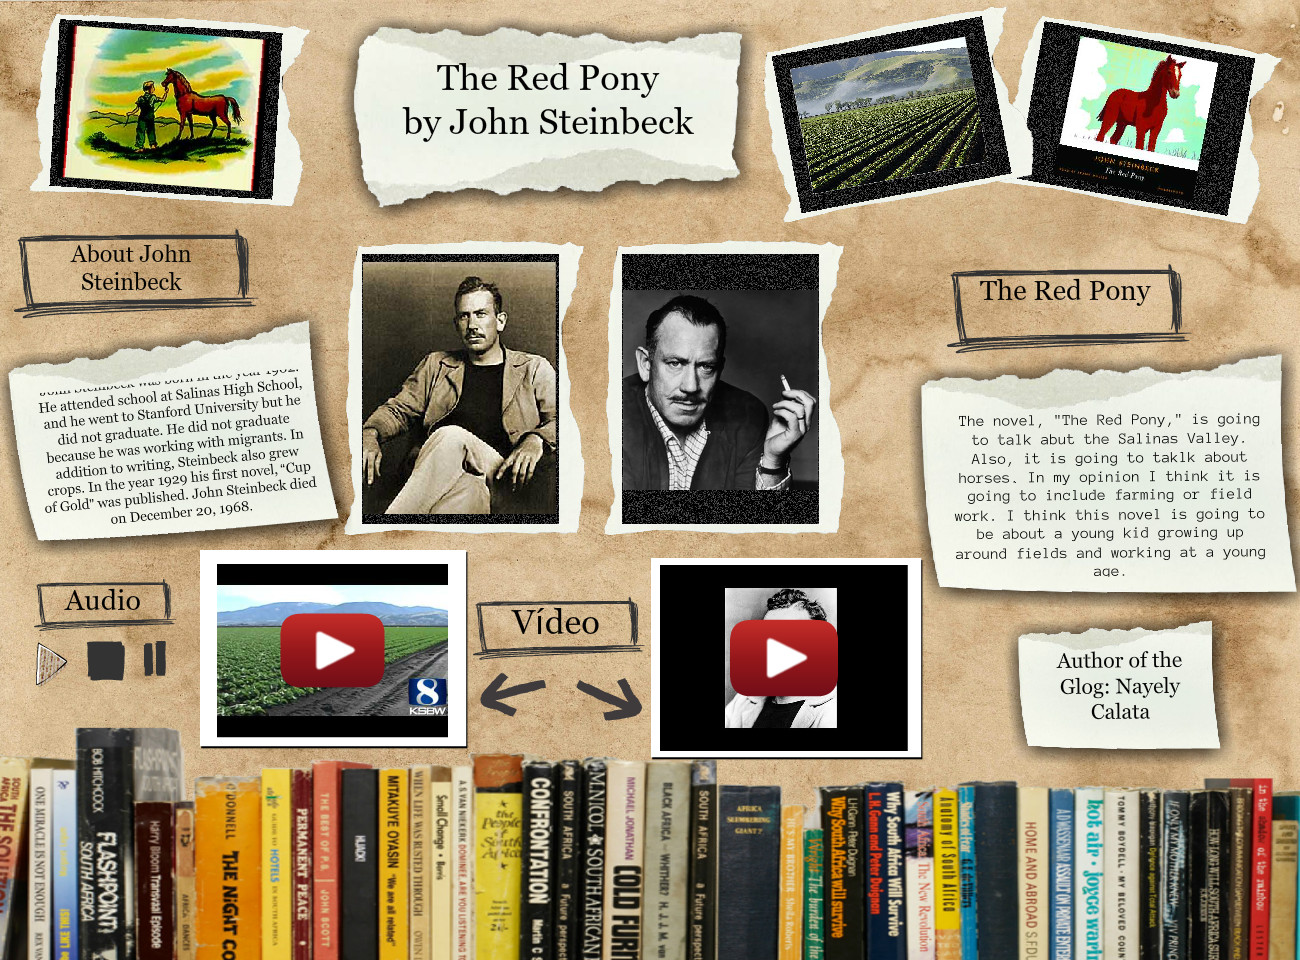 John Steinbeck: The Red Pony